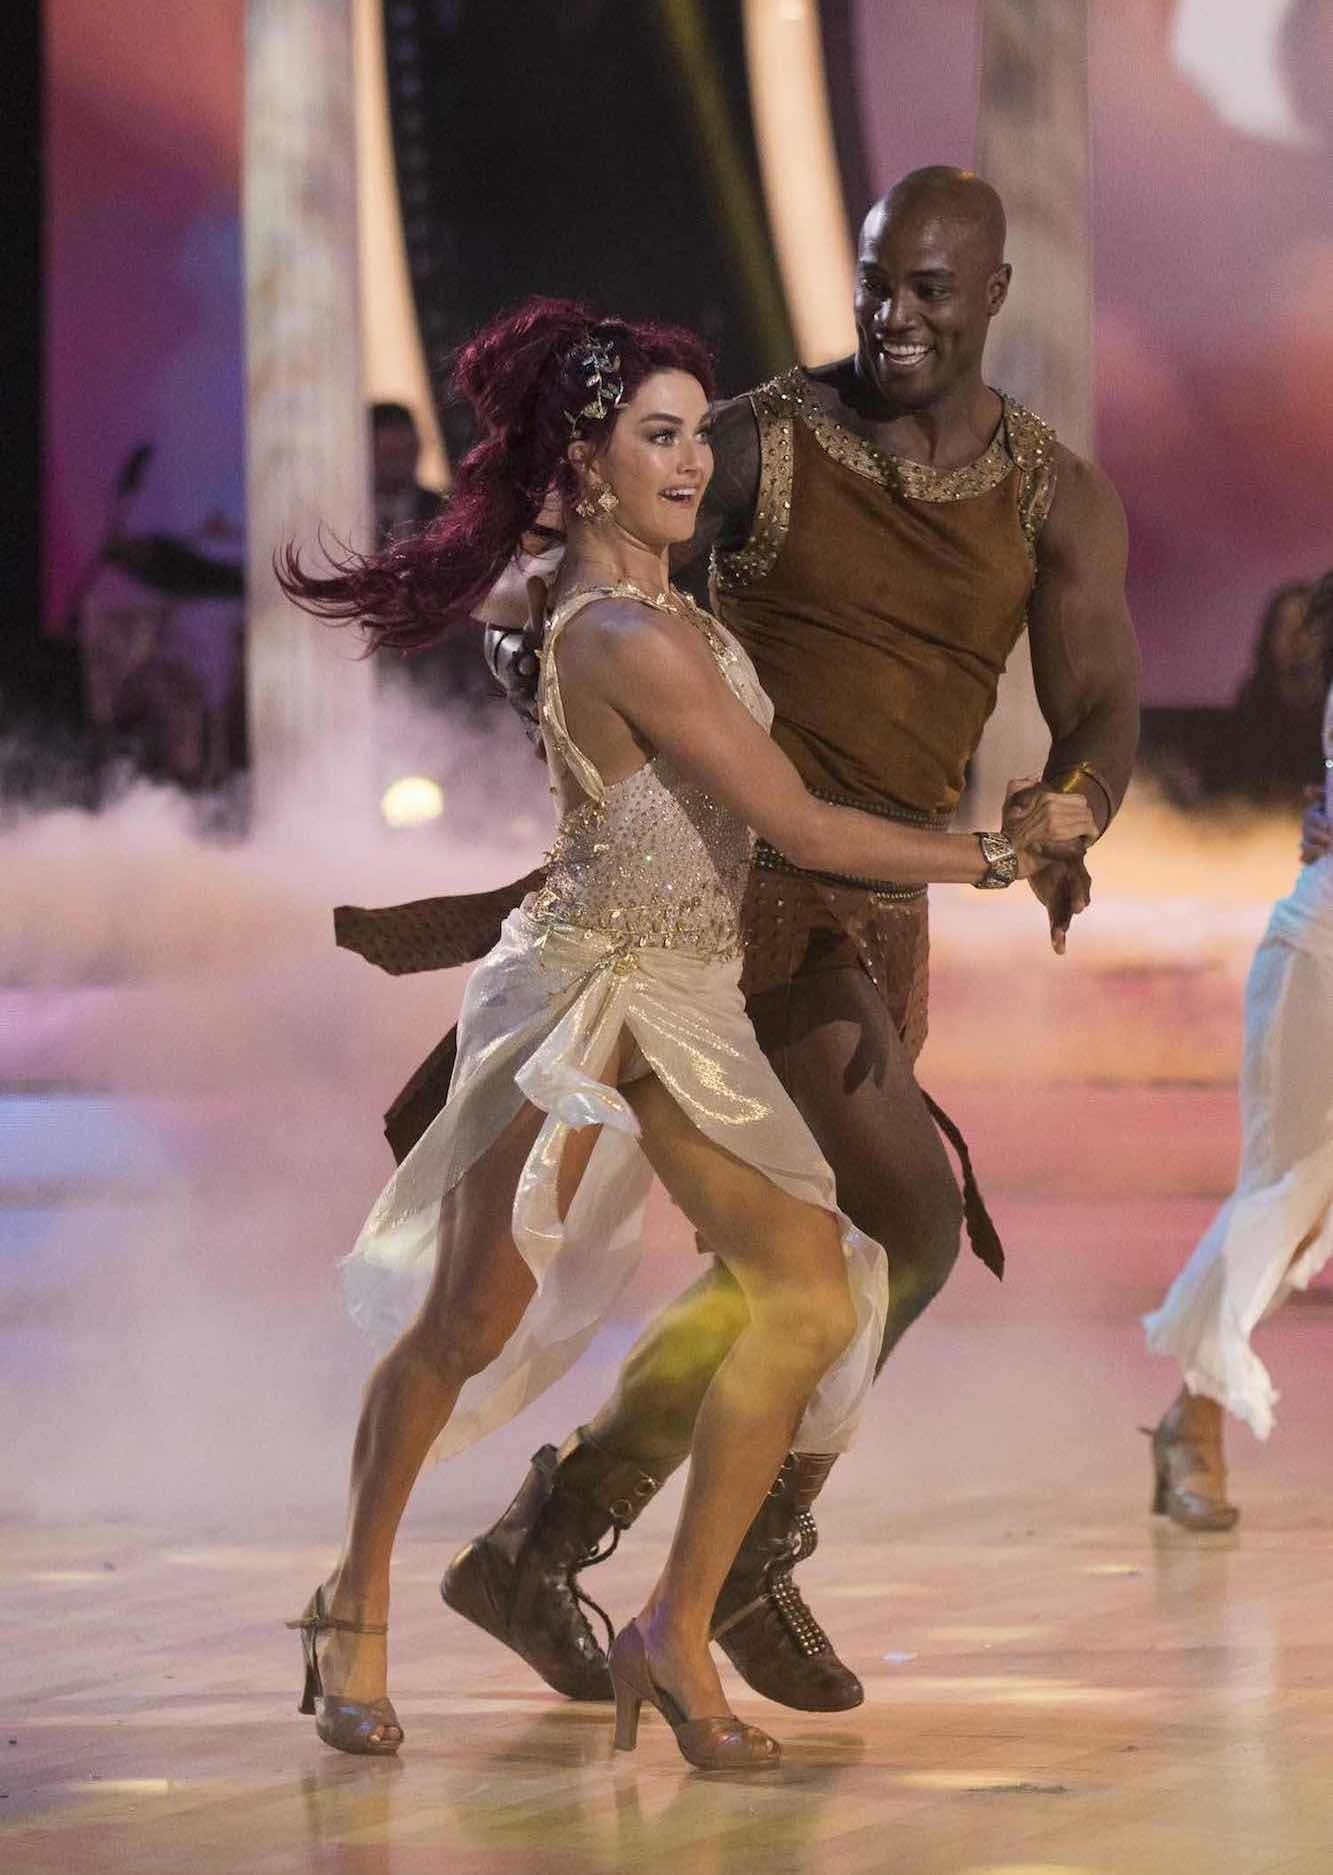 DeMarcus Ware and Lindsay Arnold dancing, dressed as characters from Hercules